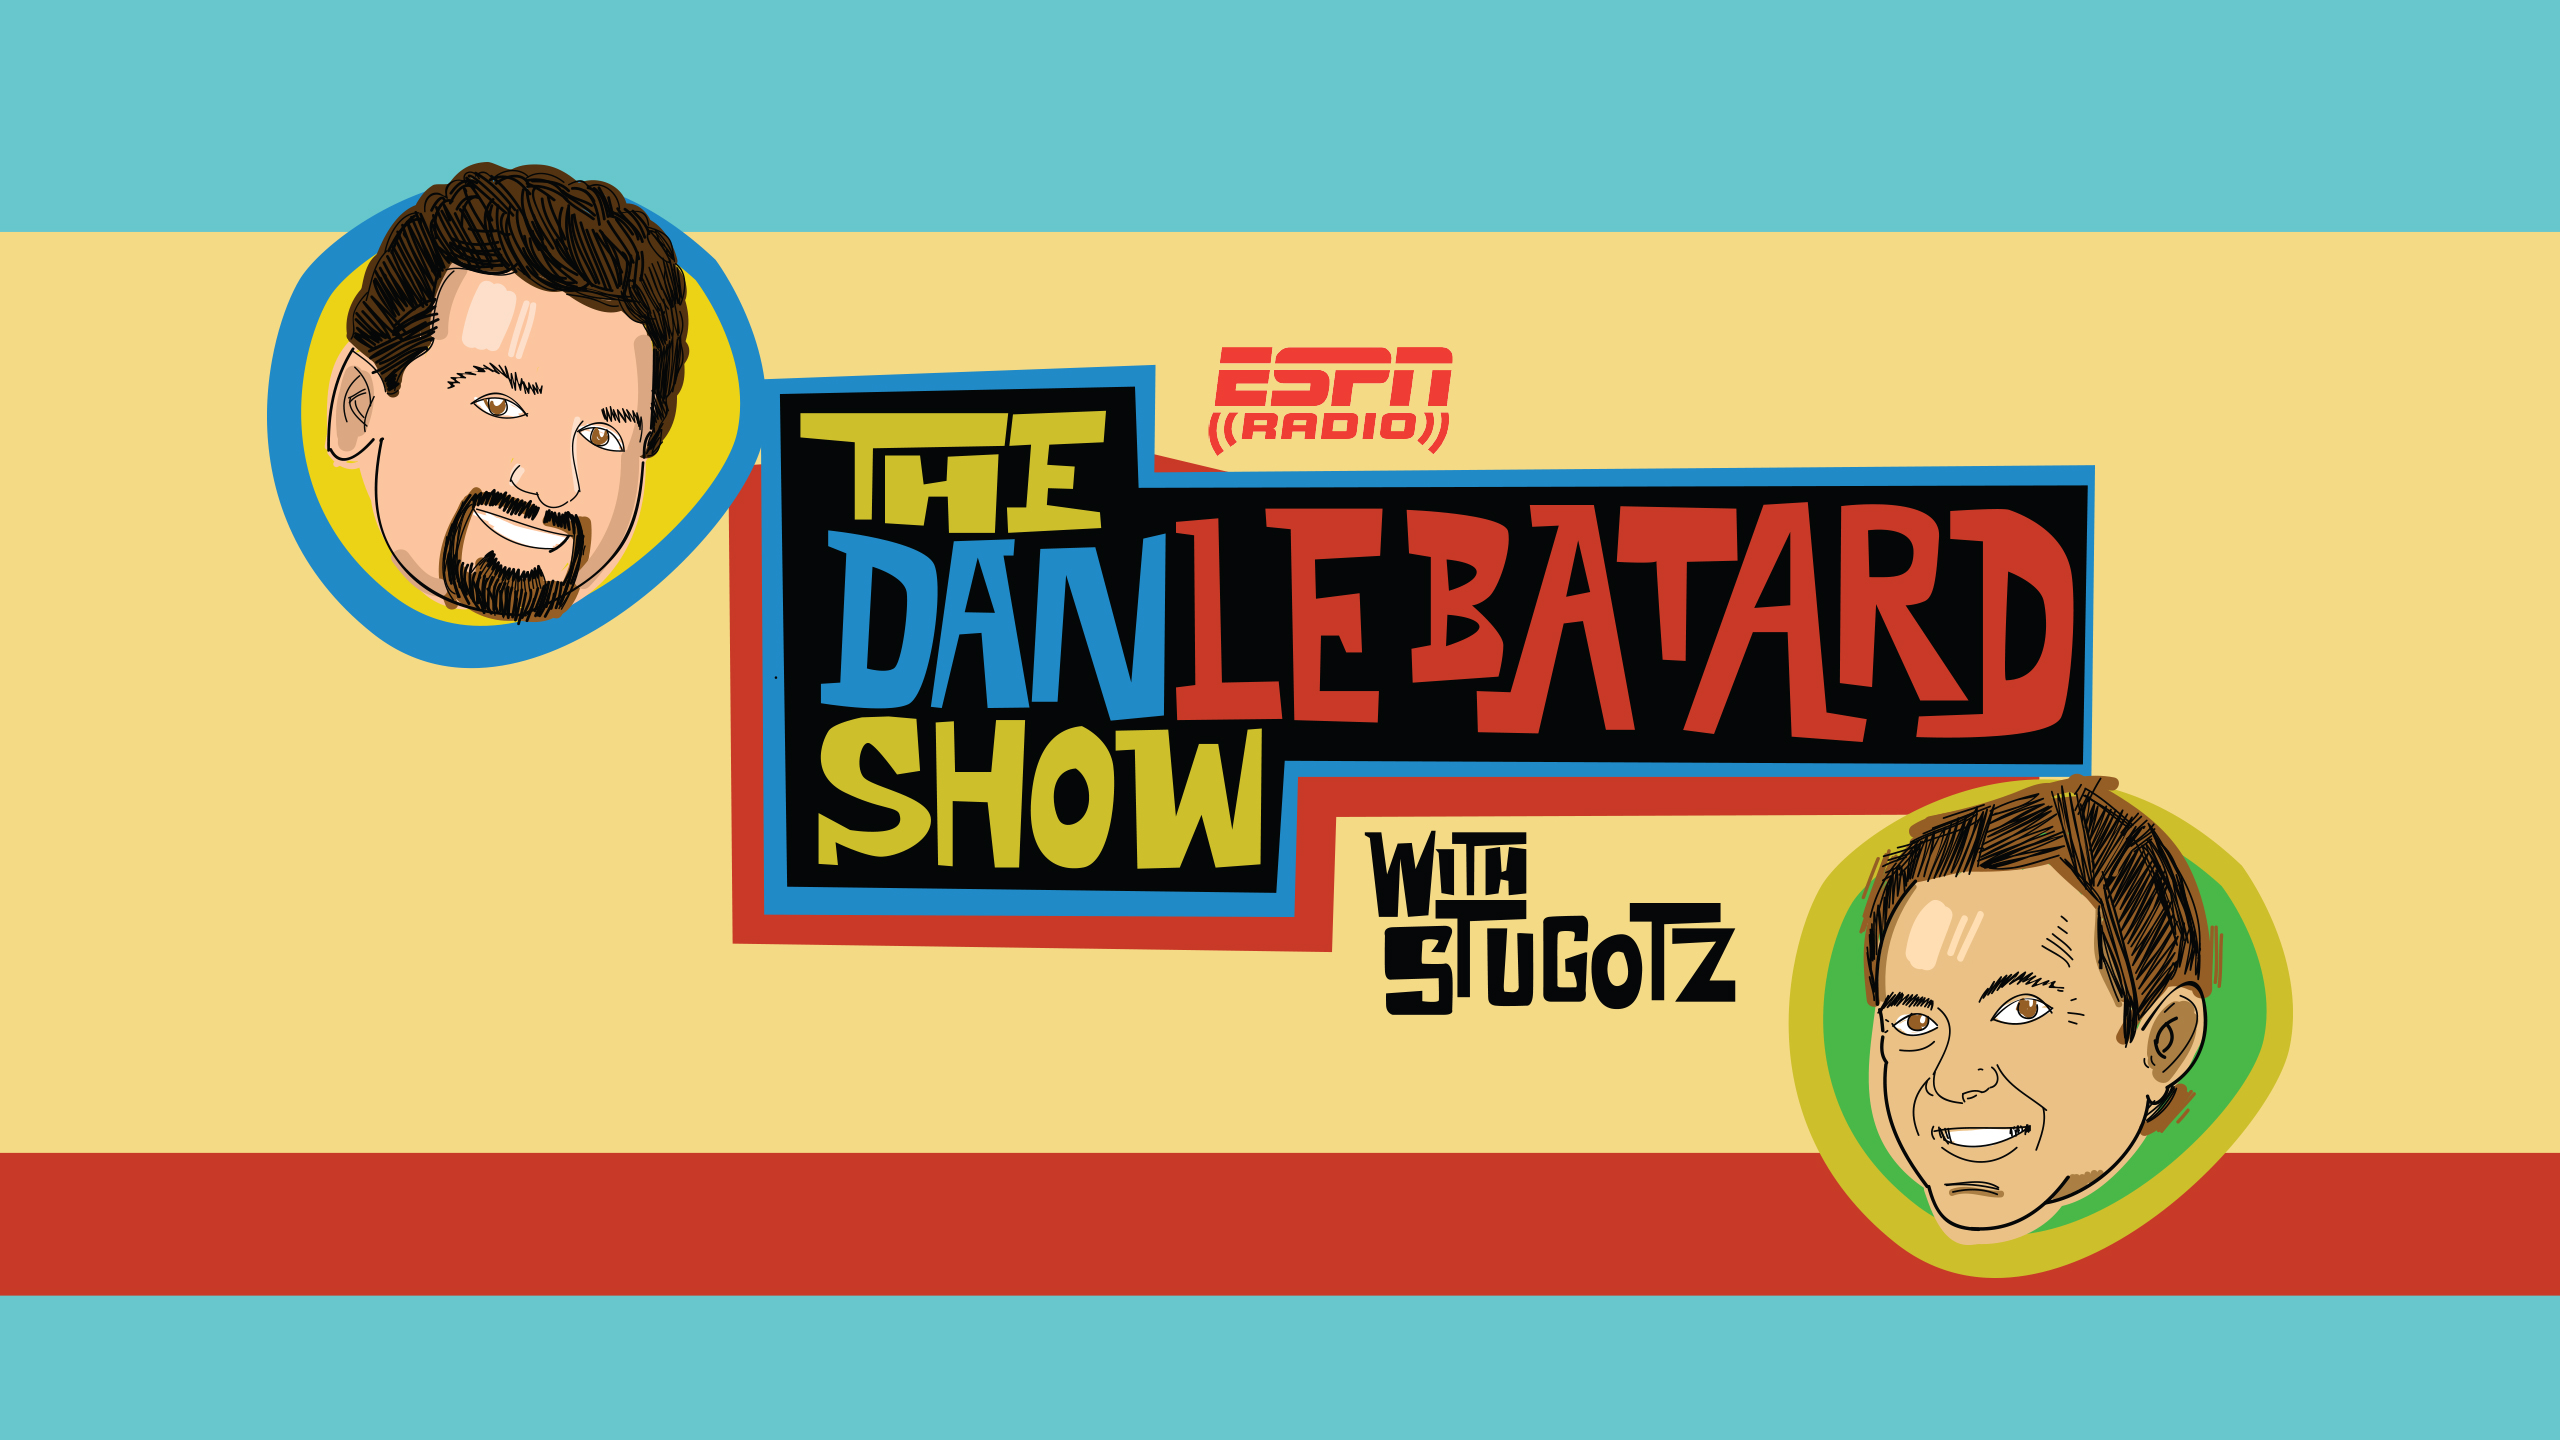 Mon, 10/22 - The Dan Le Batard Show with Stugotz Presented by Progressive